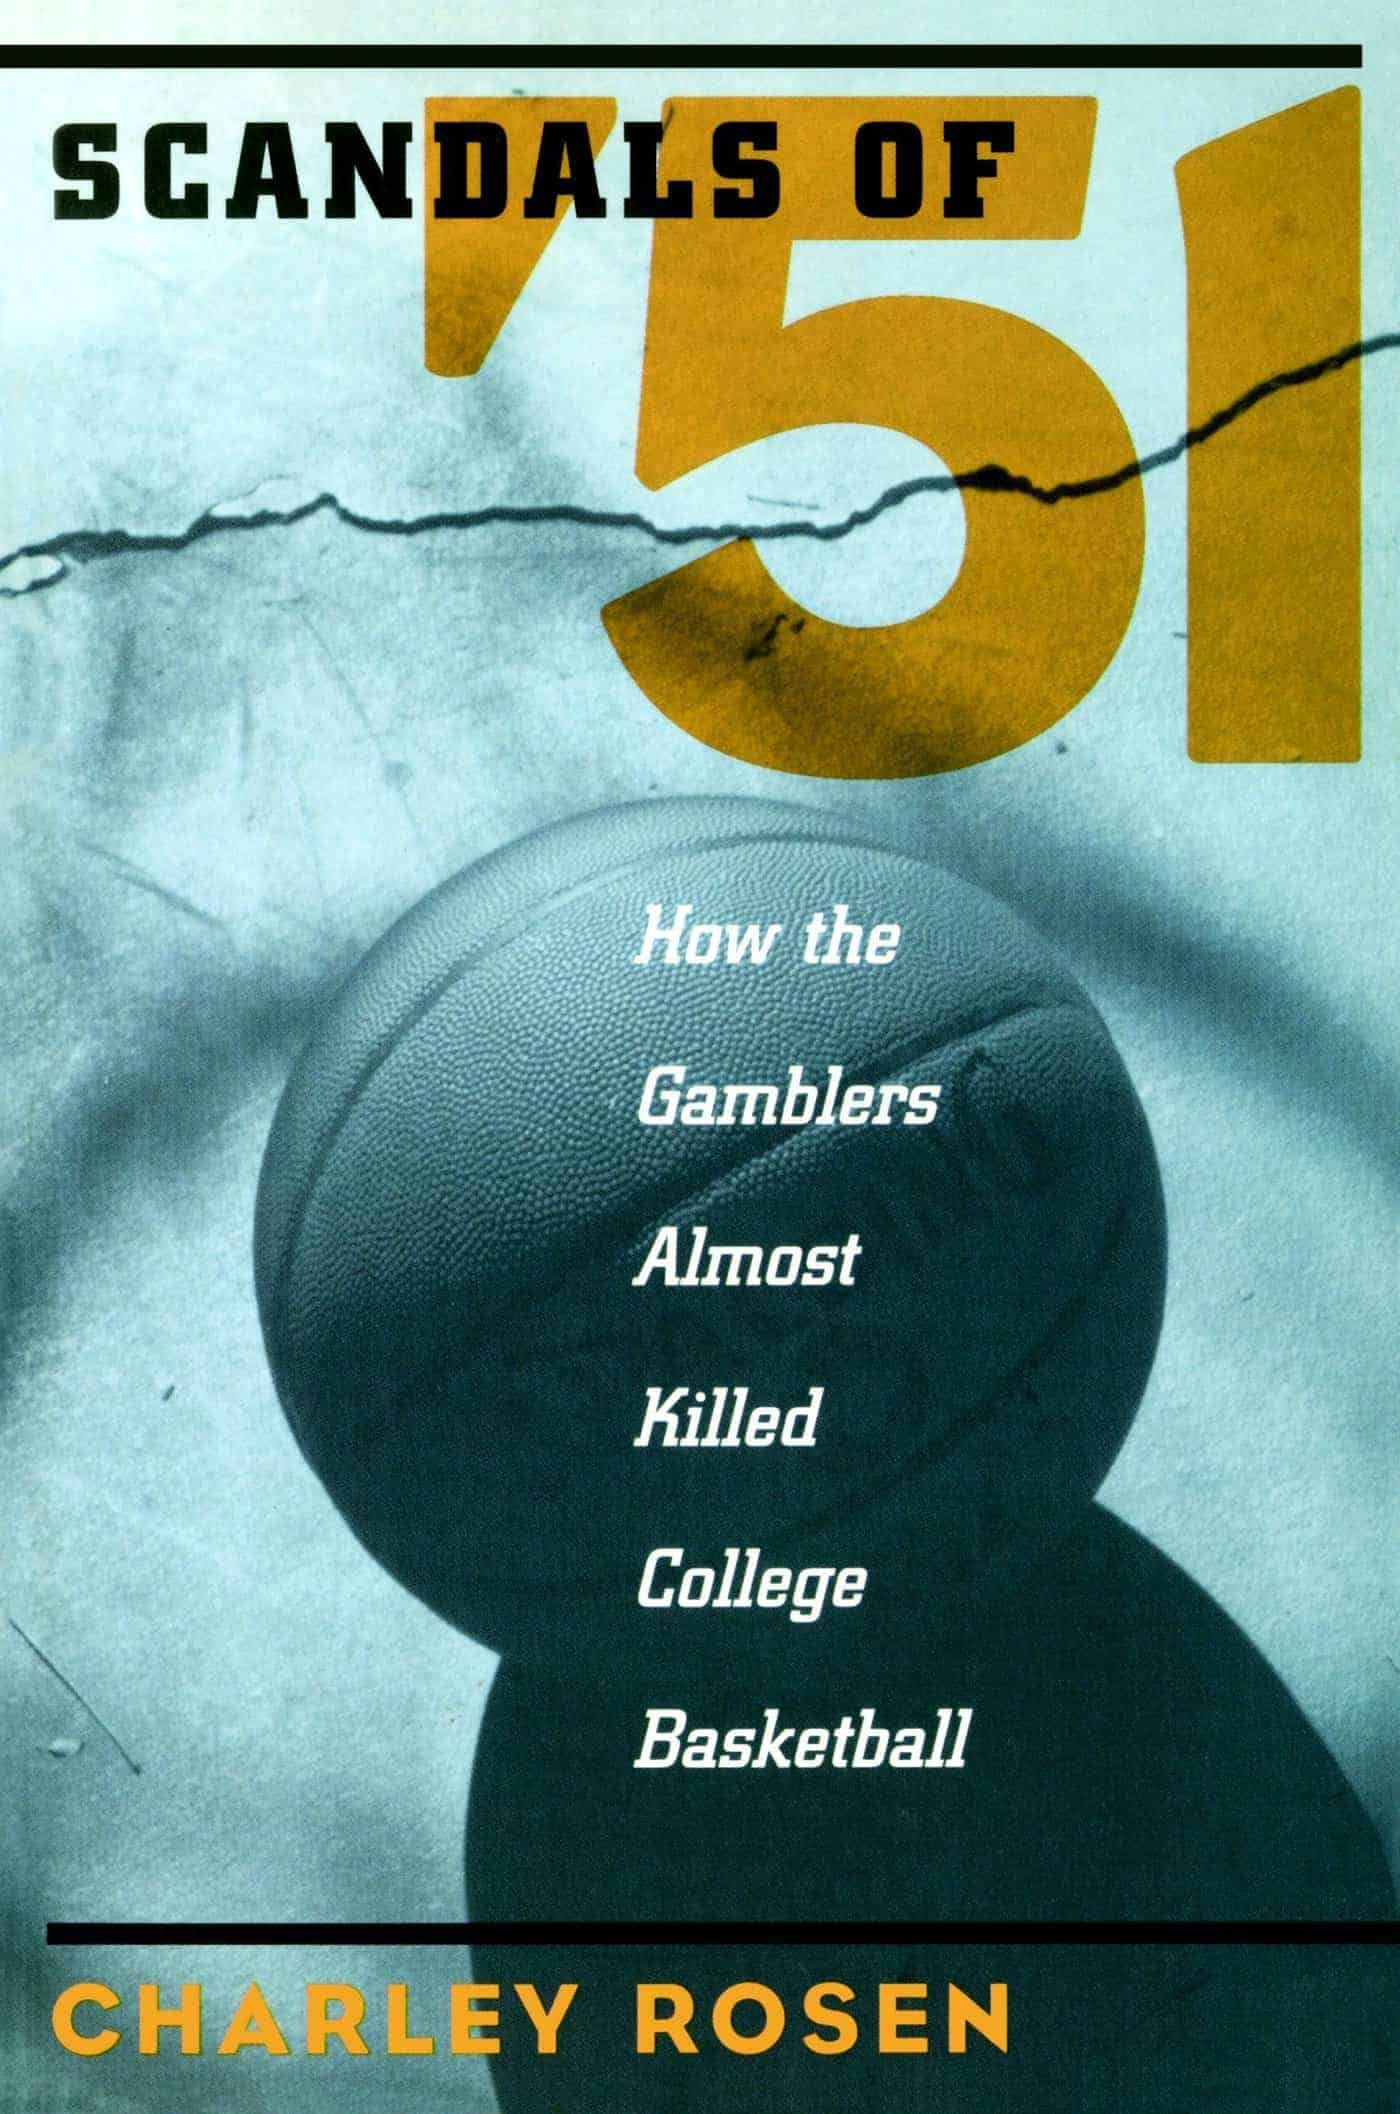 Scandals of 51 di Charley Rosen